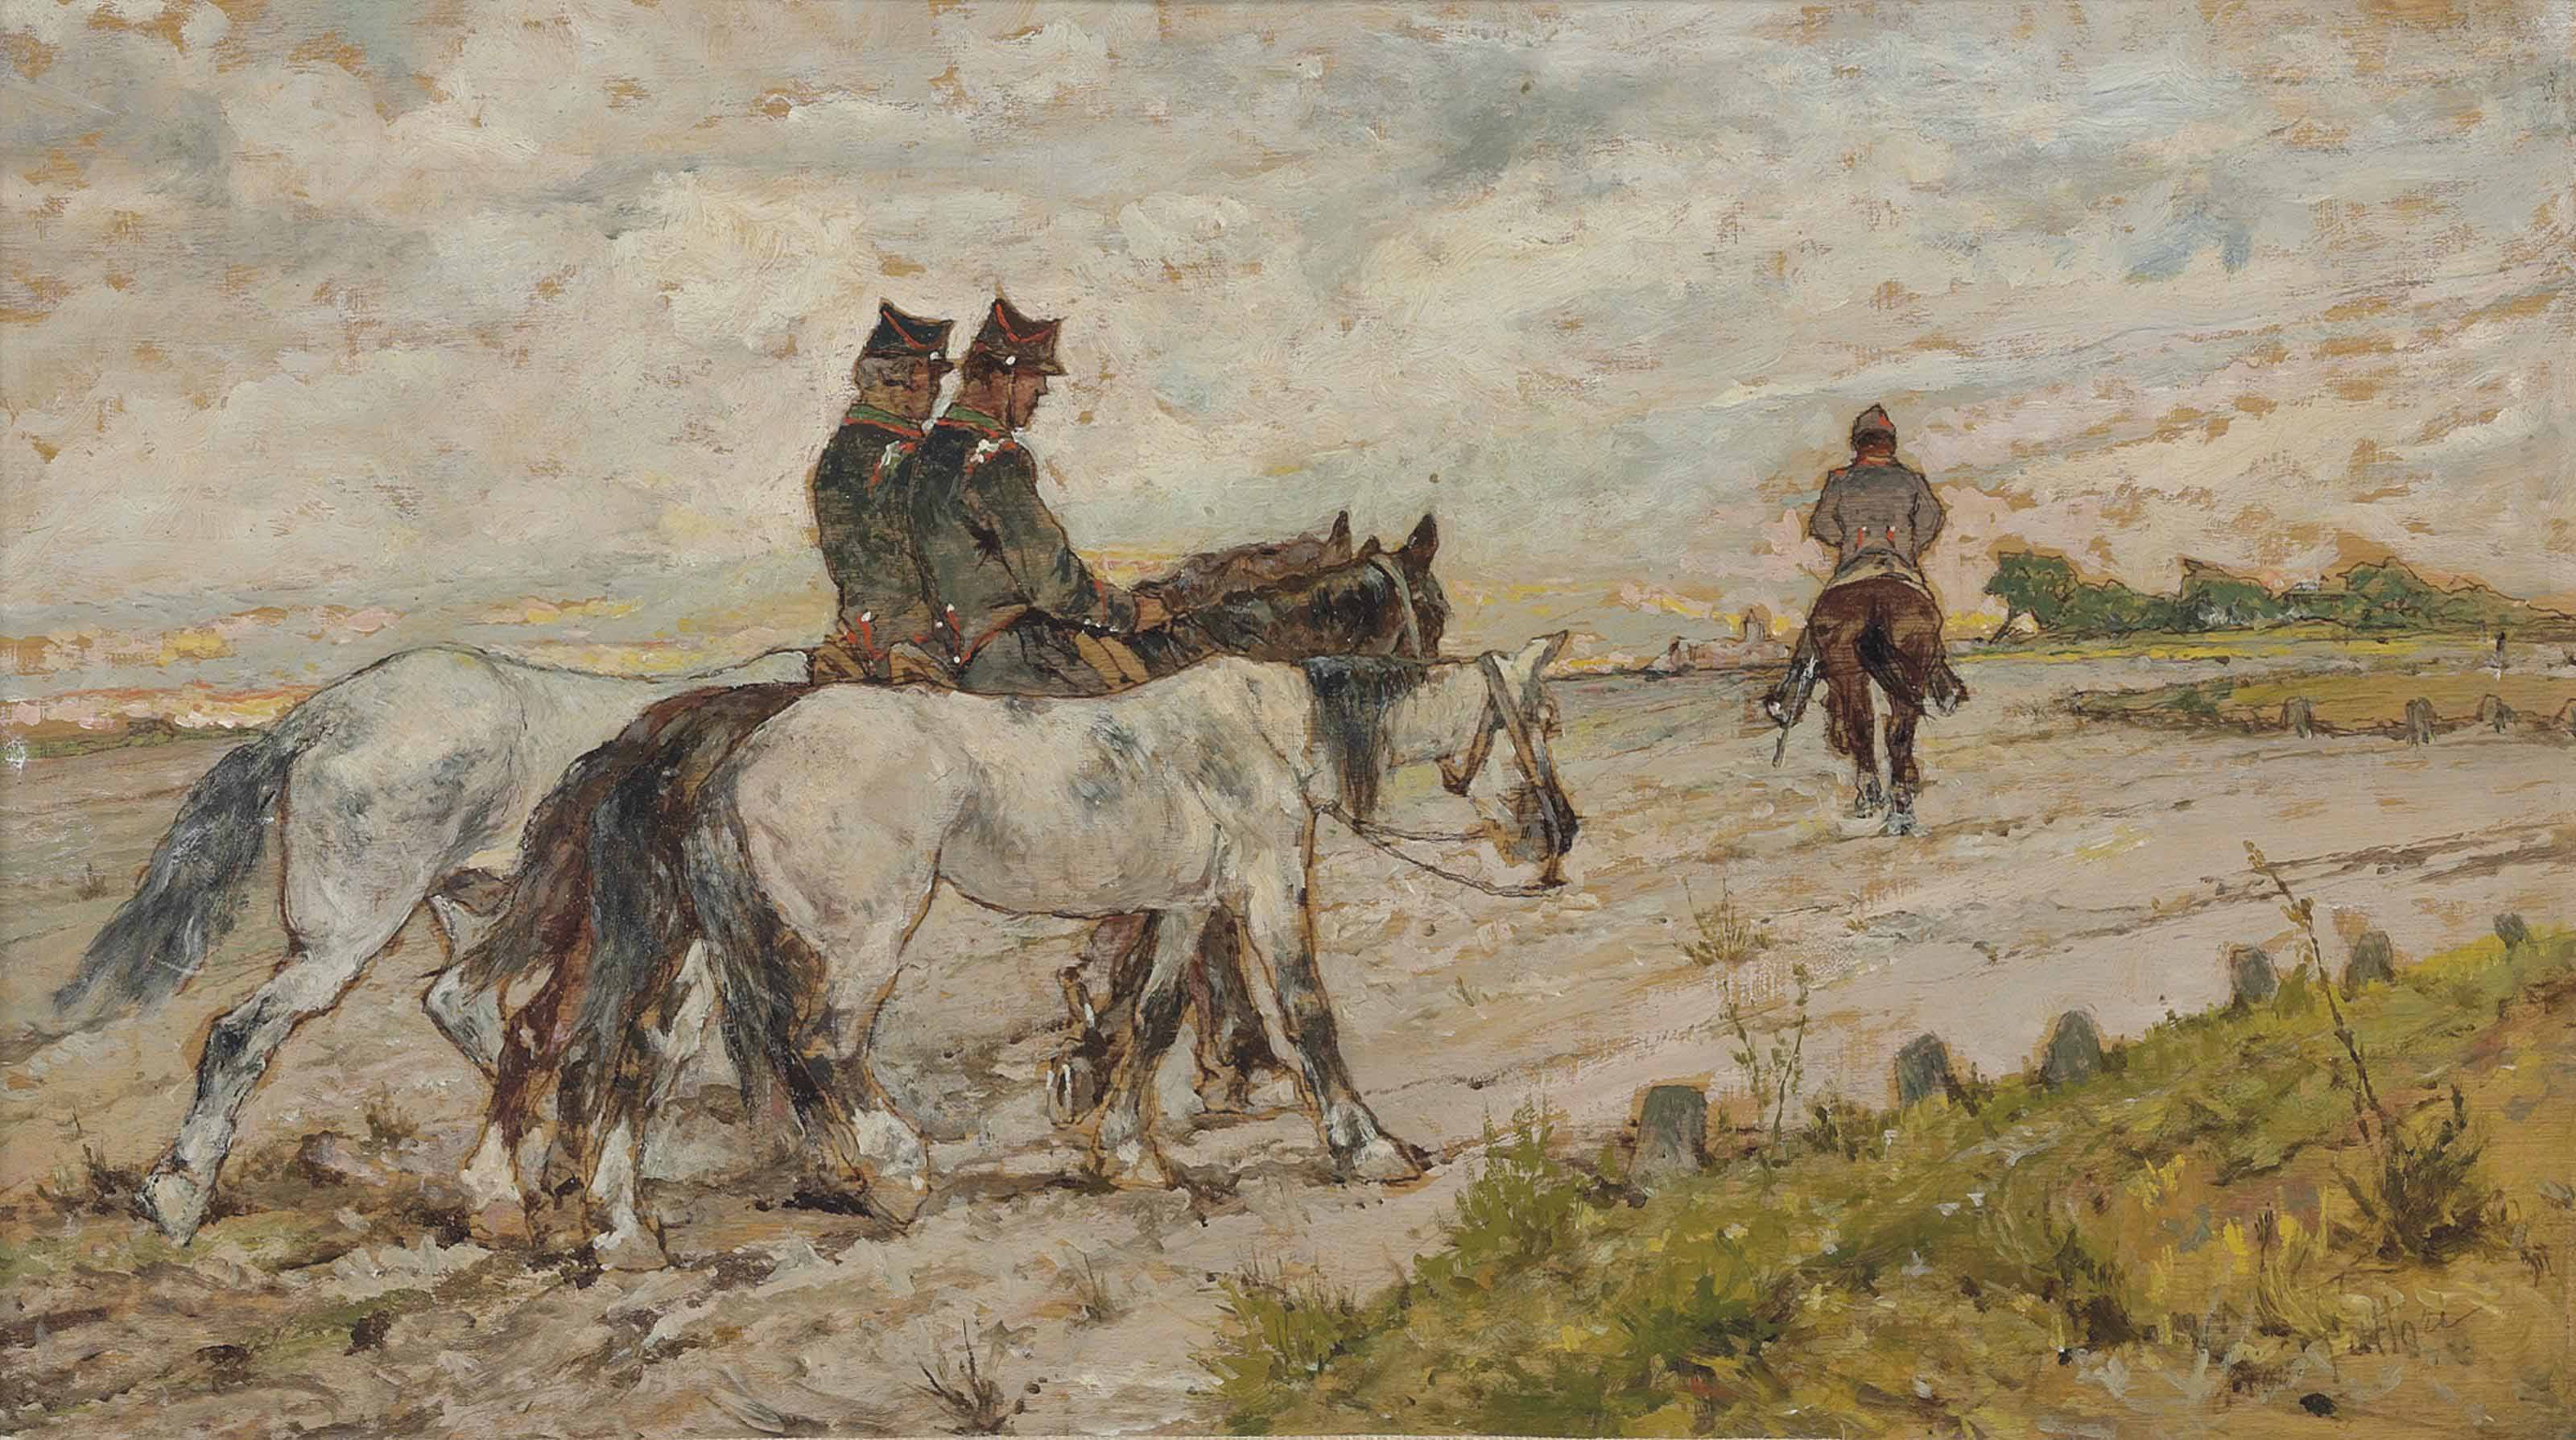 Three soldiers riding in an estuary